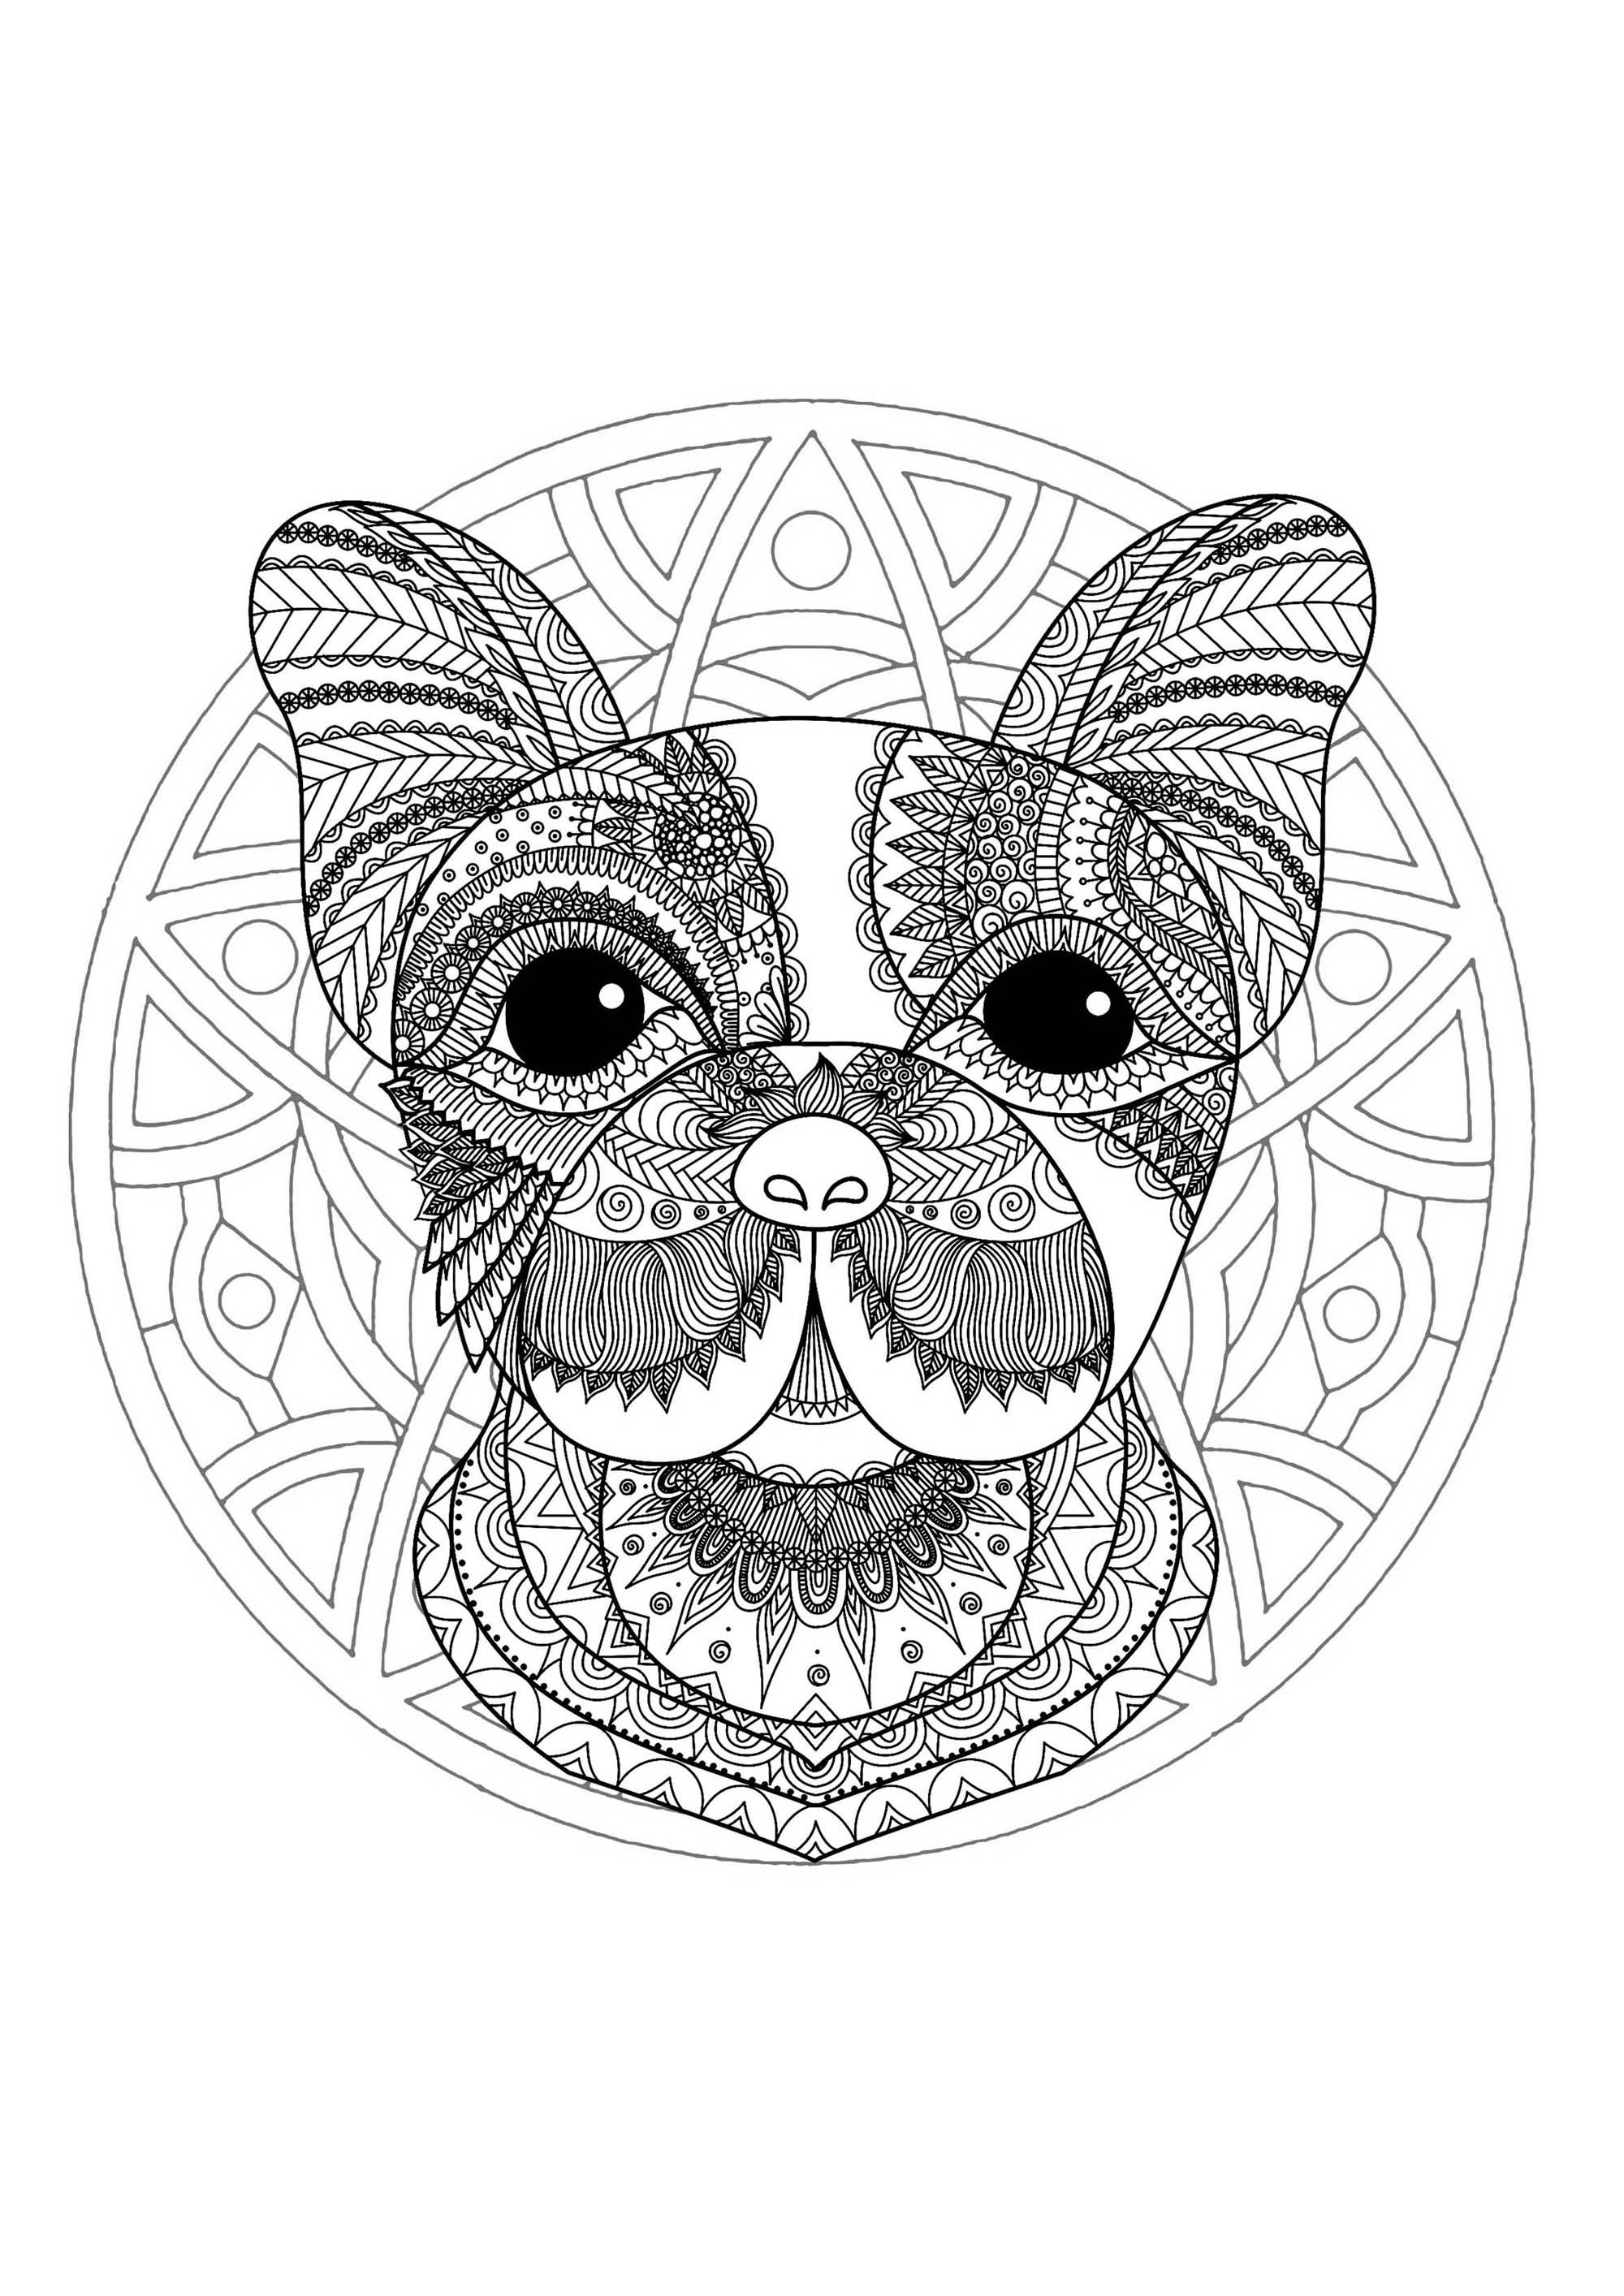 easy animal mandala coloring pages the best free mandala drawing images download from 2016 easy pages mandala coloring animal